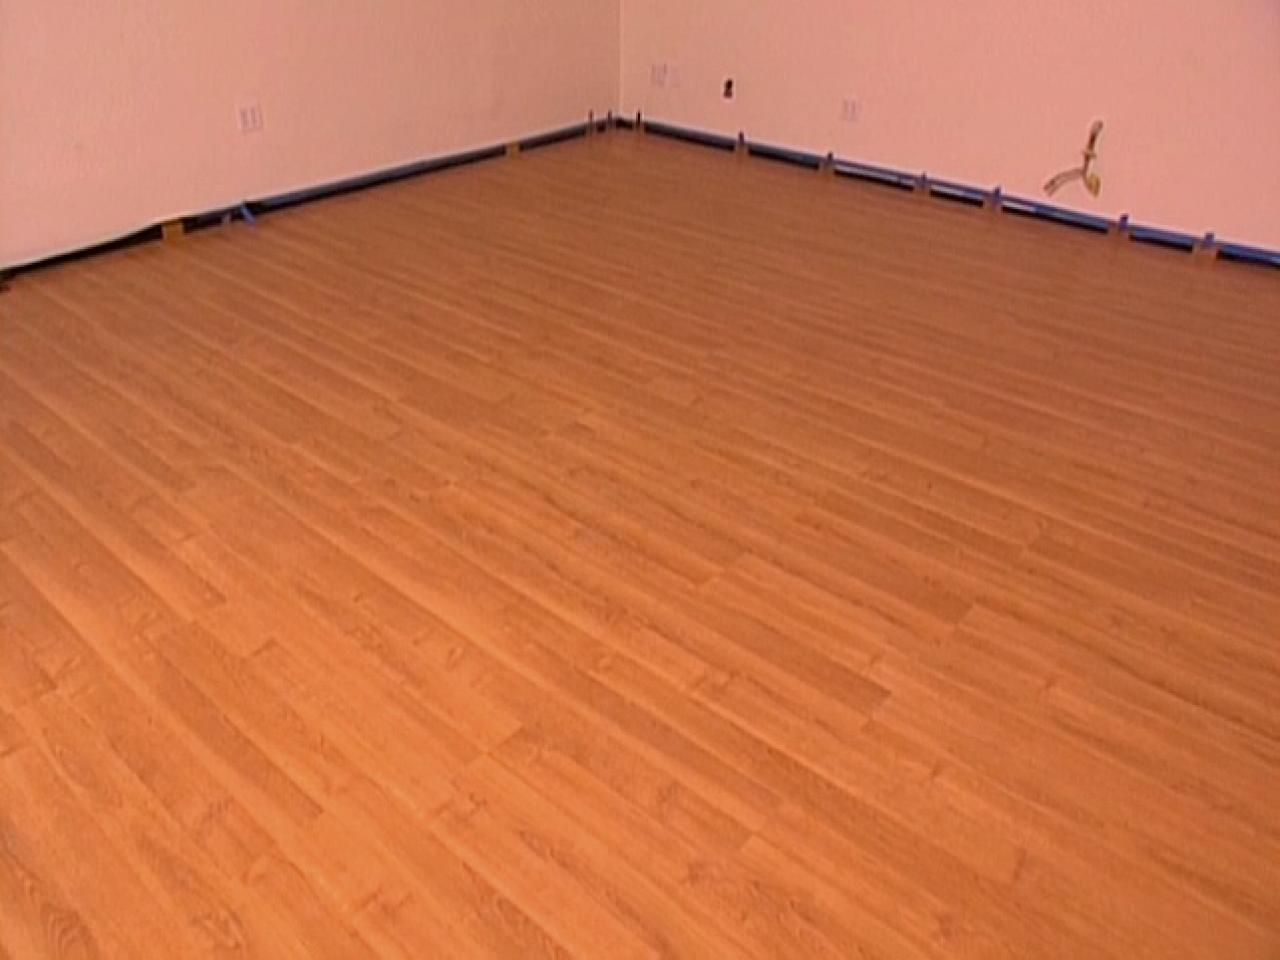 Laying laminate flooring in basement minimalist home design in